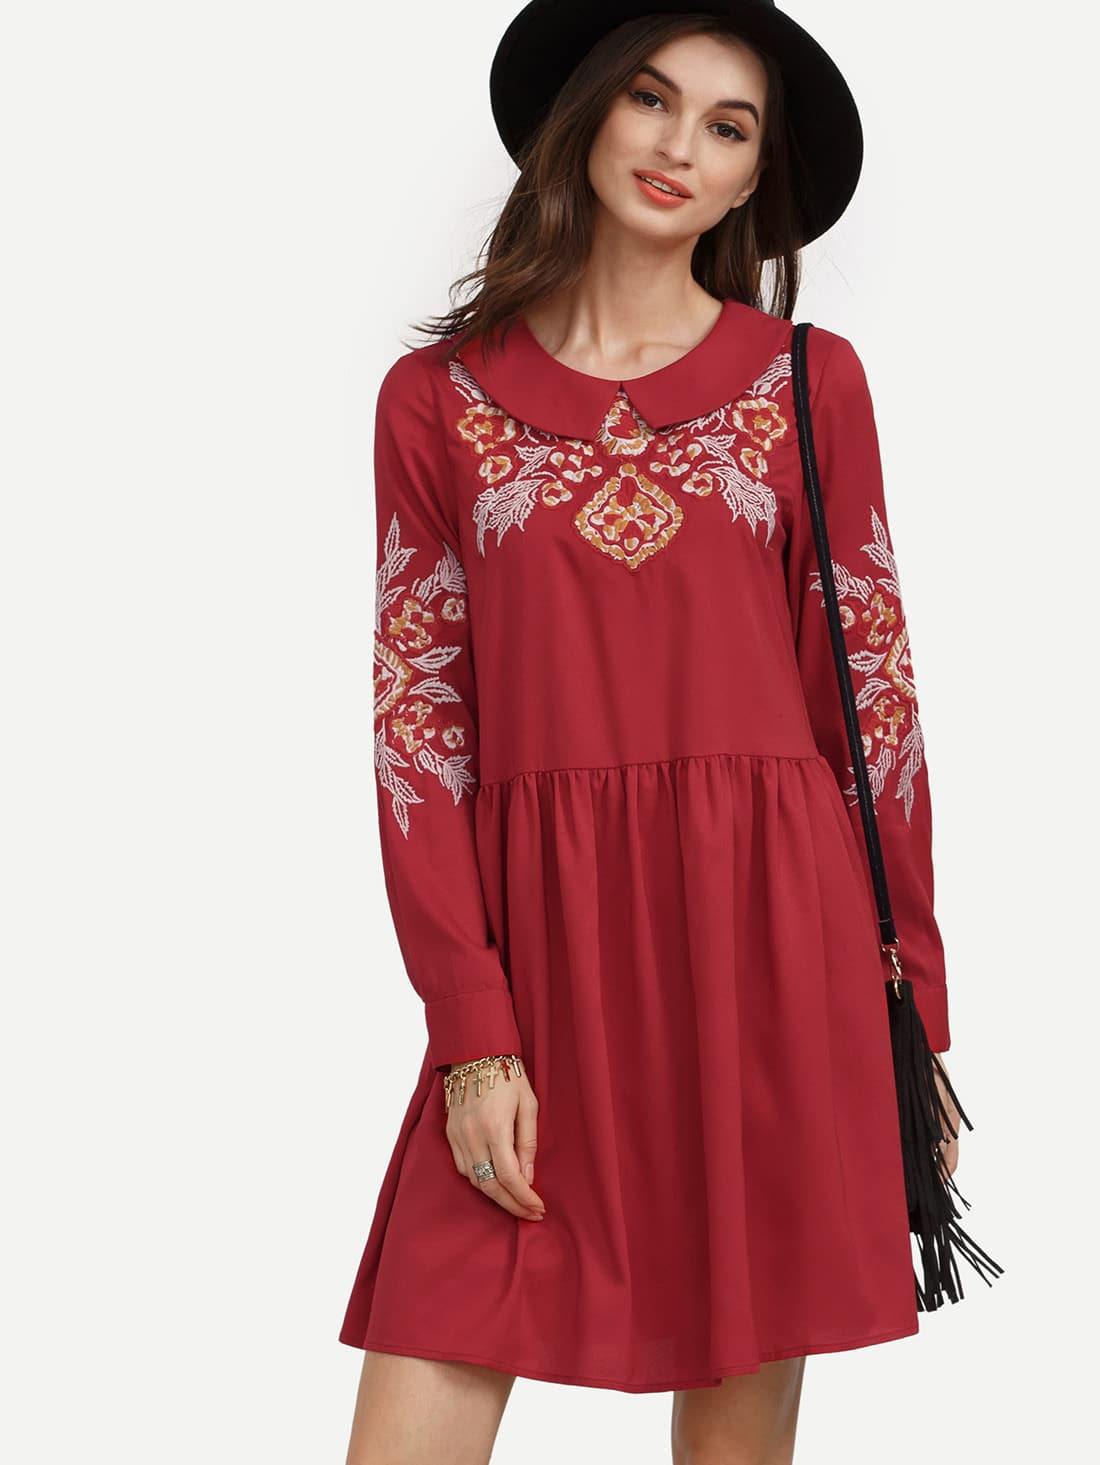 Red Crew Neck Floral Embroidered Dress -SheIn(Sheinside)